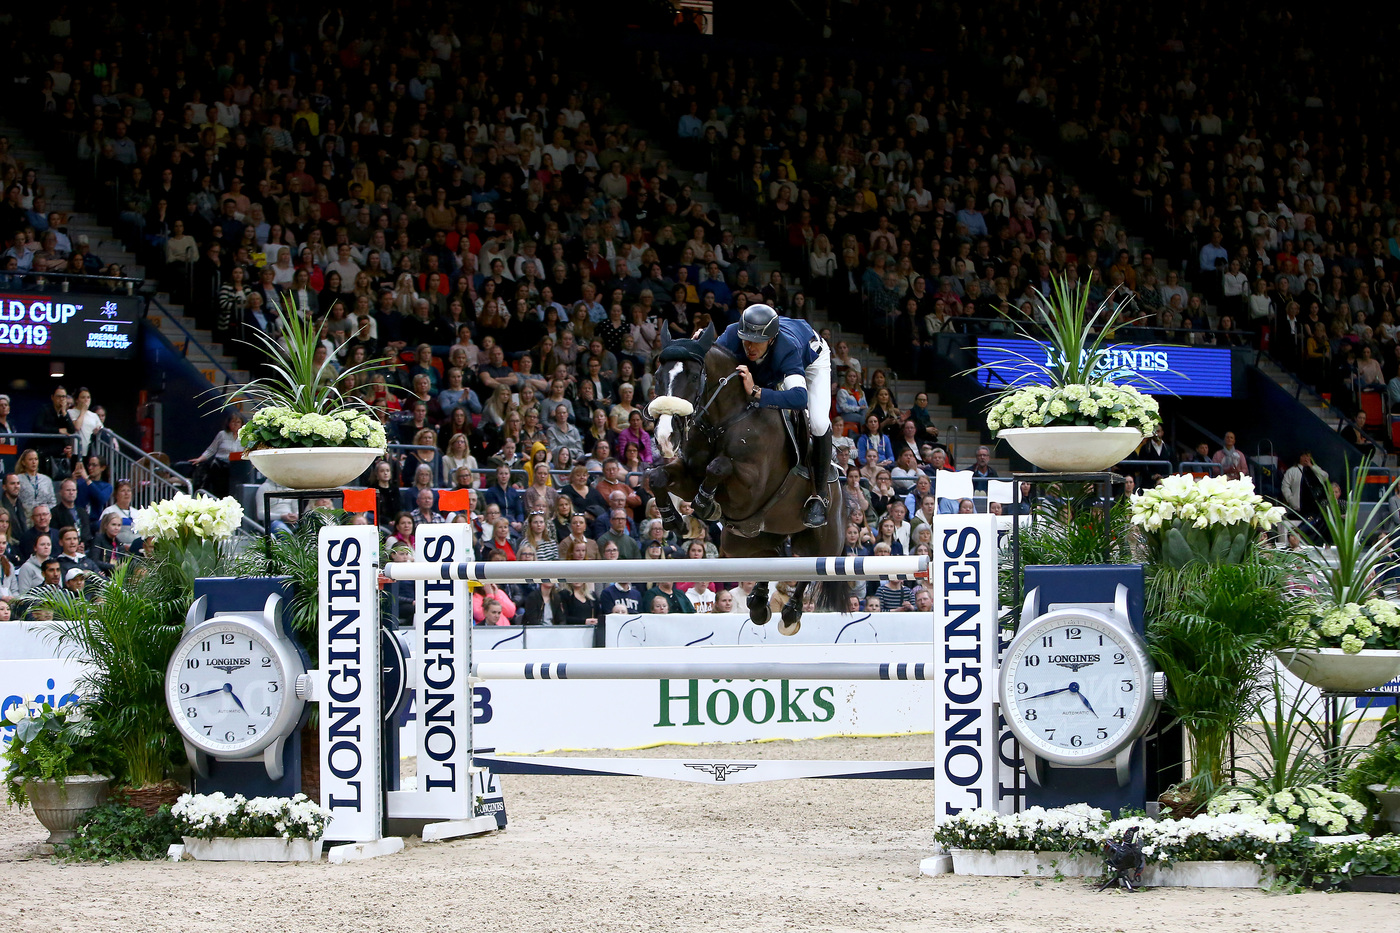 Longines Show Jumping Event: Steve Guerdat and Alamo took brilliant victory at the 2019 Longines FEI Jumping World CupTM Final 7